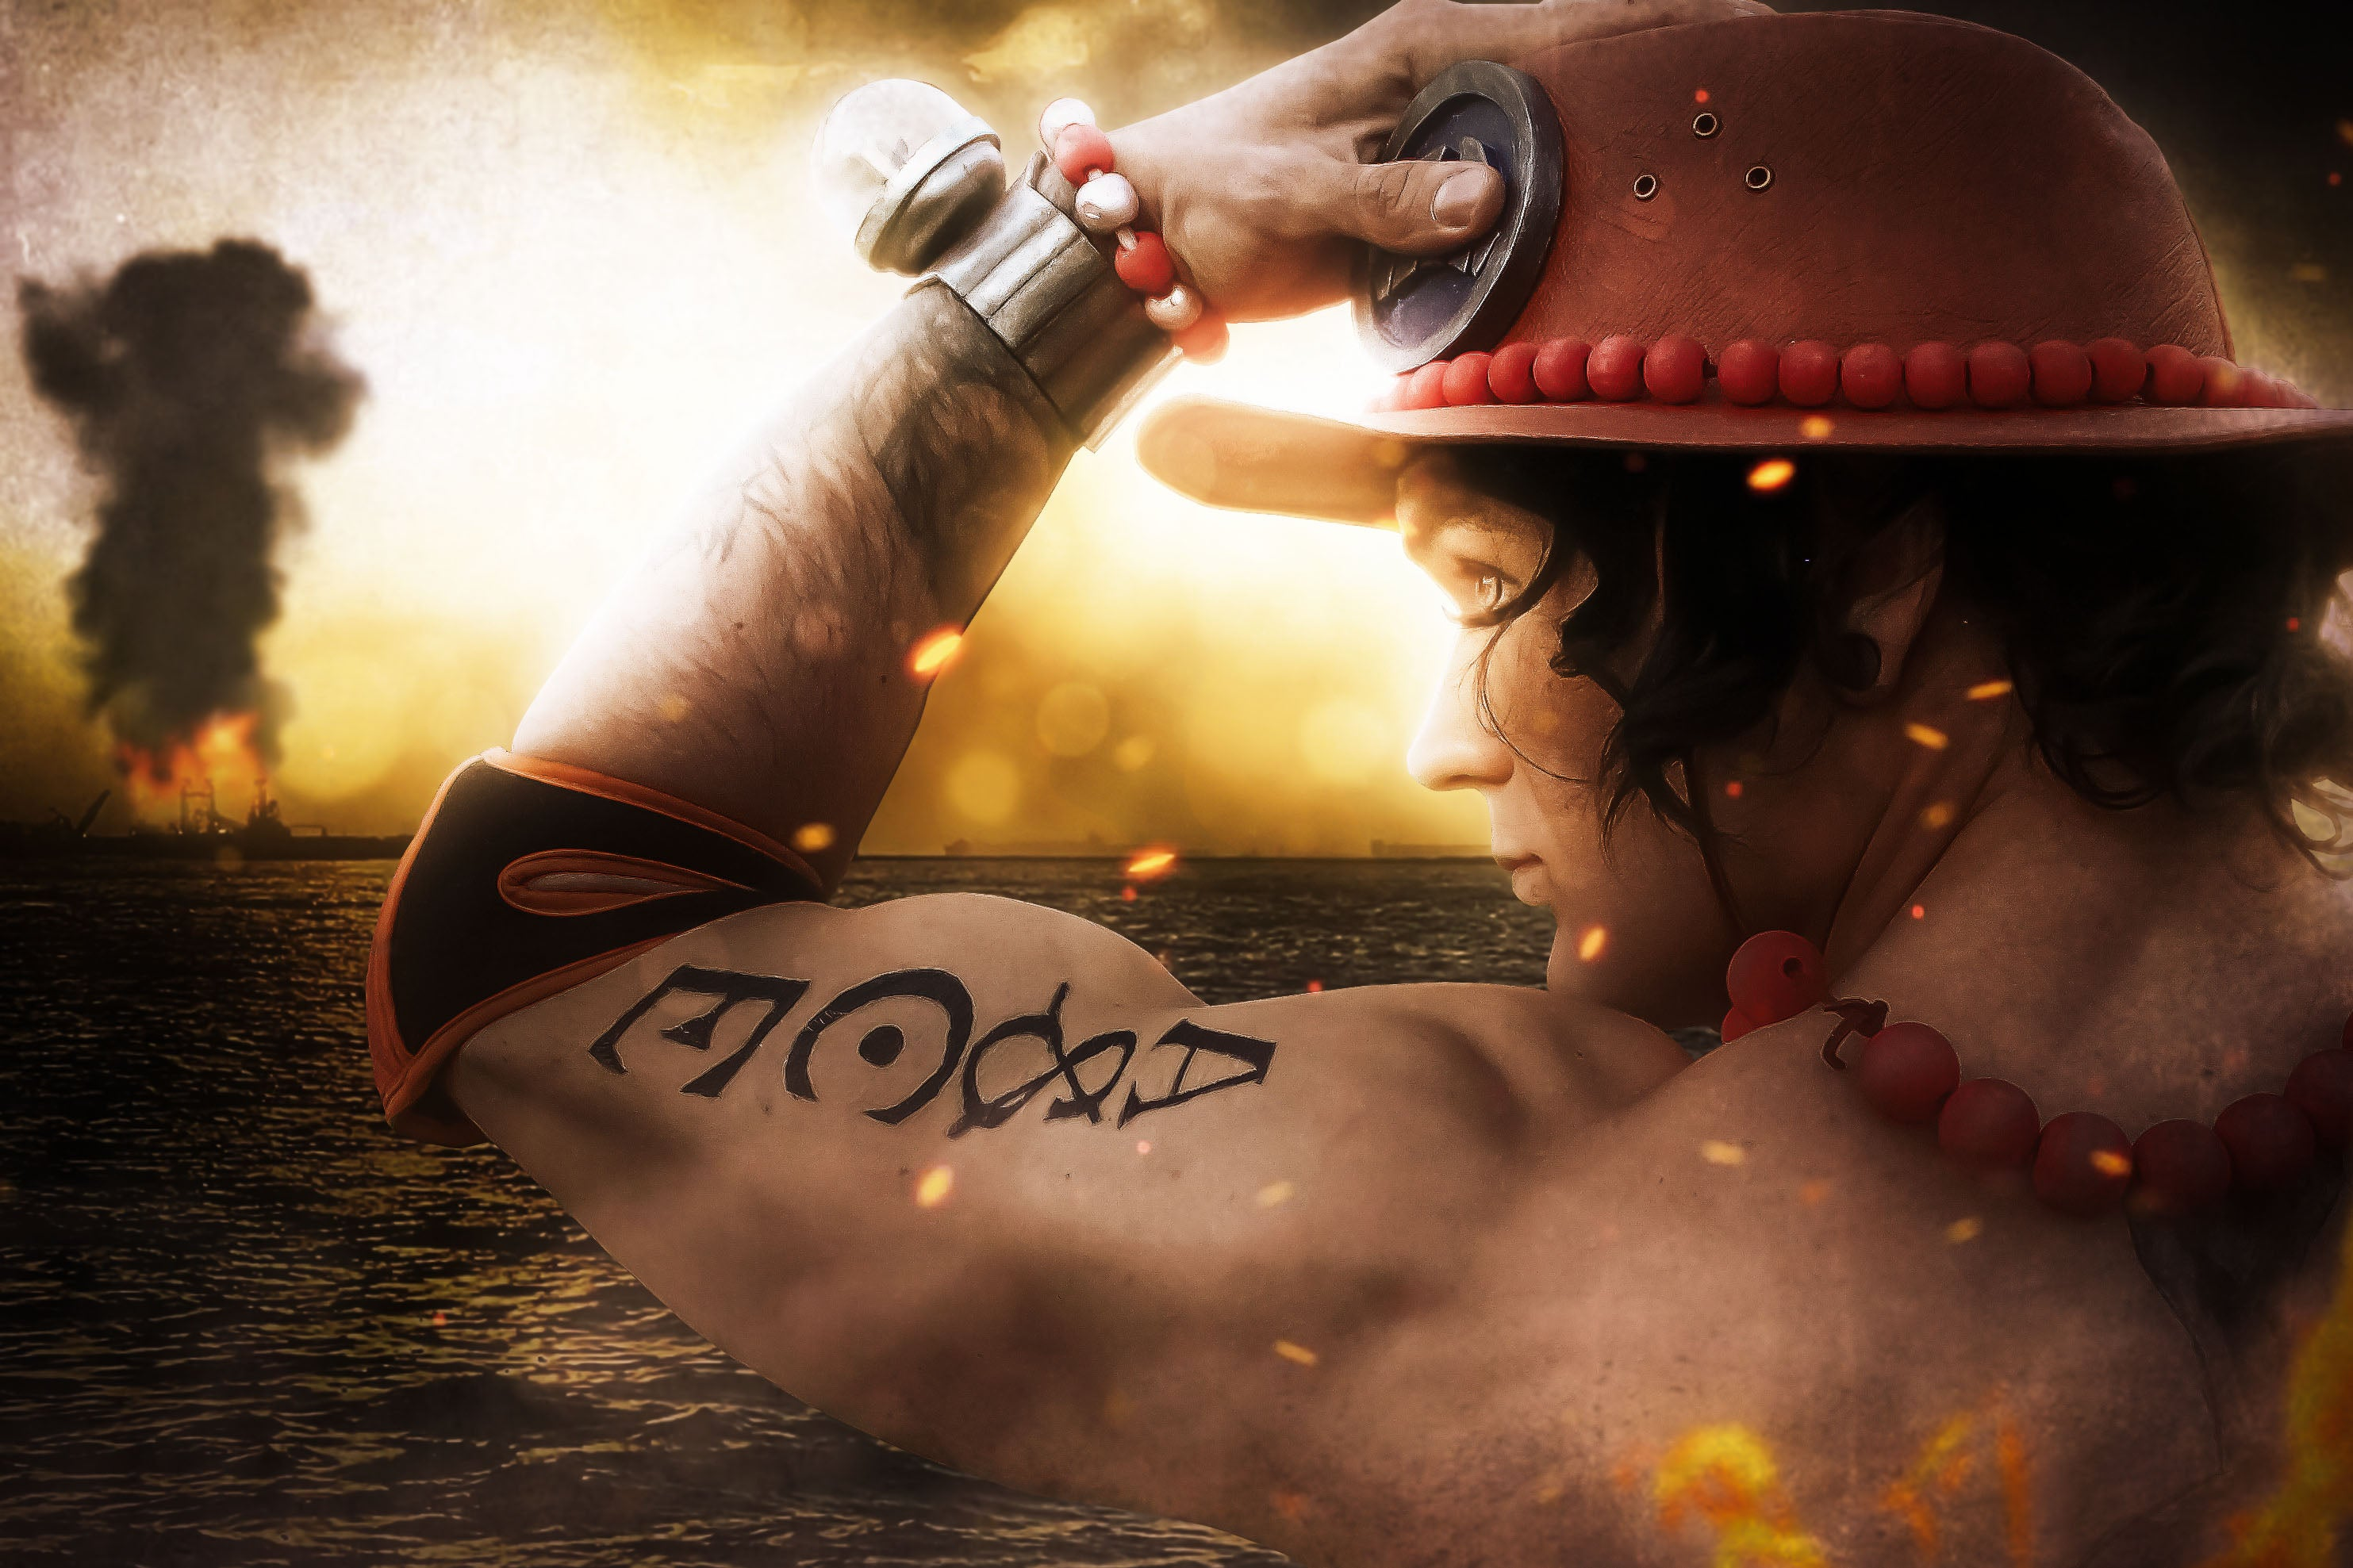 Firefist Ace cosplay from One Piece with ASCE tattoo